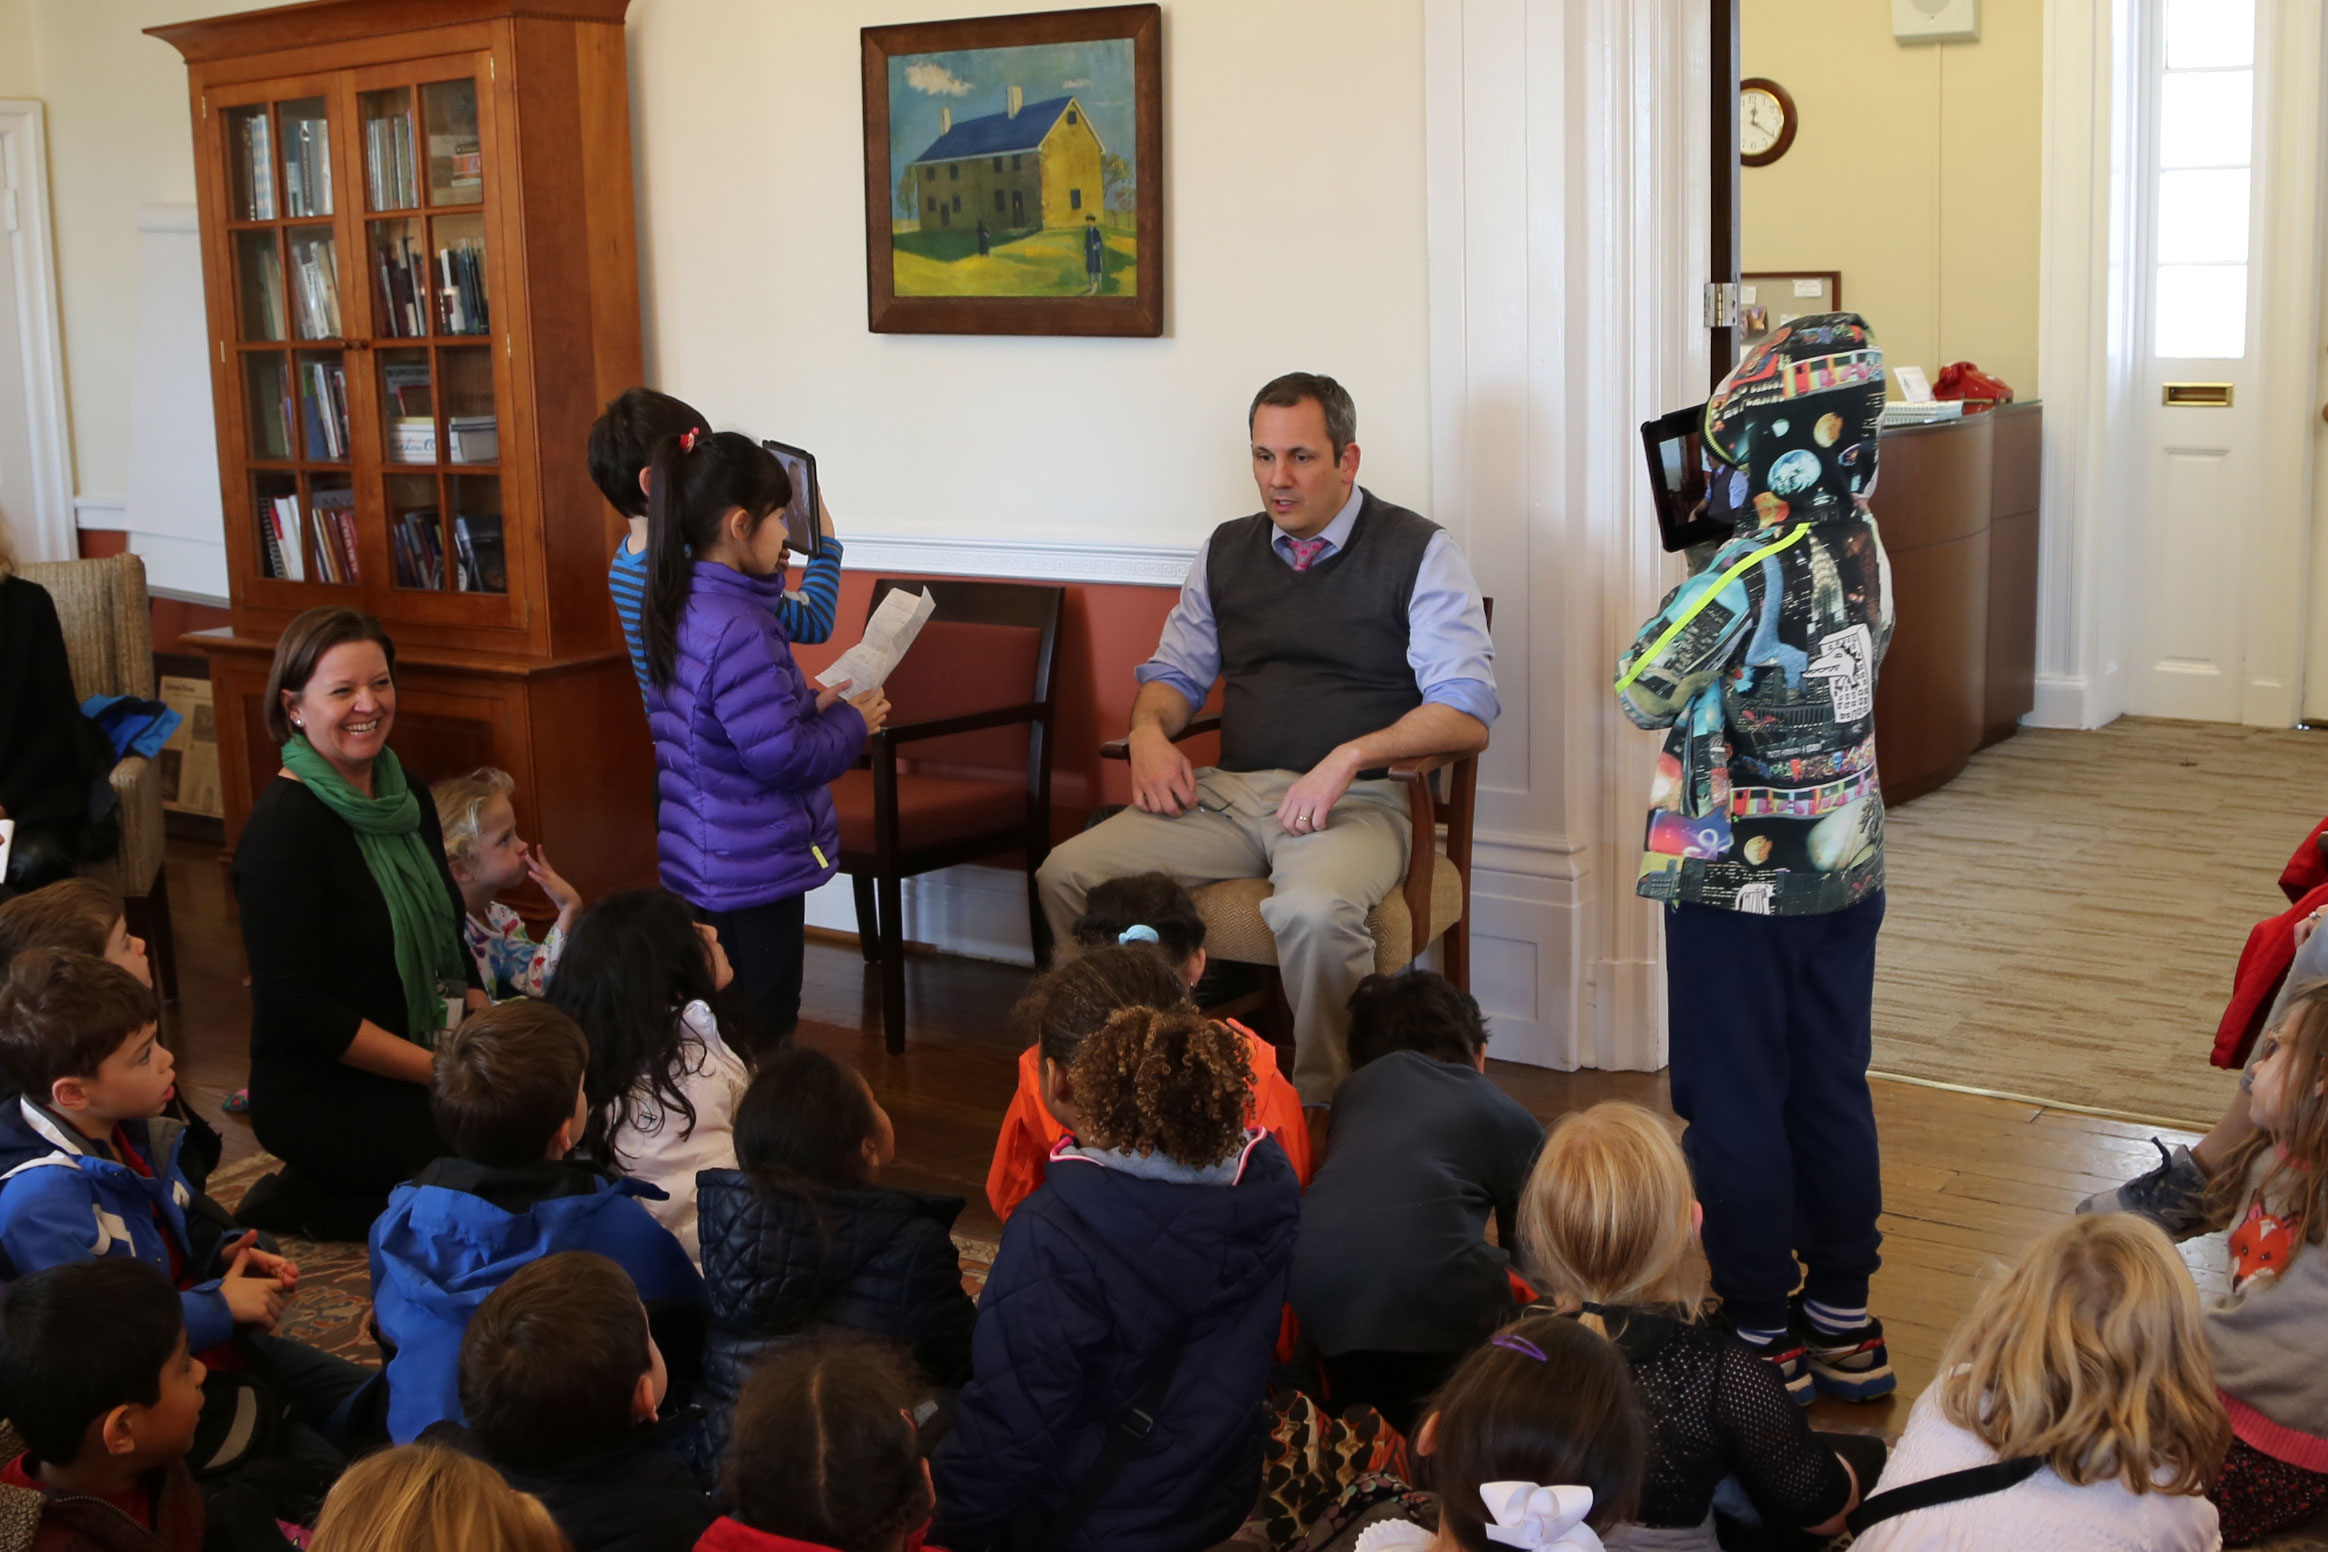 First graders interview Head of School Bryan Garman as part of their study of community